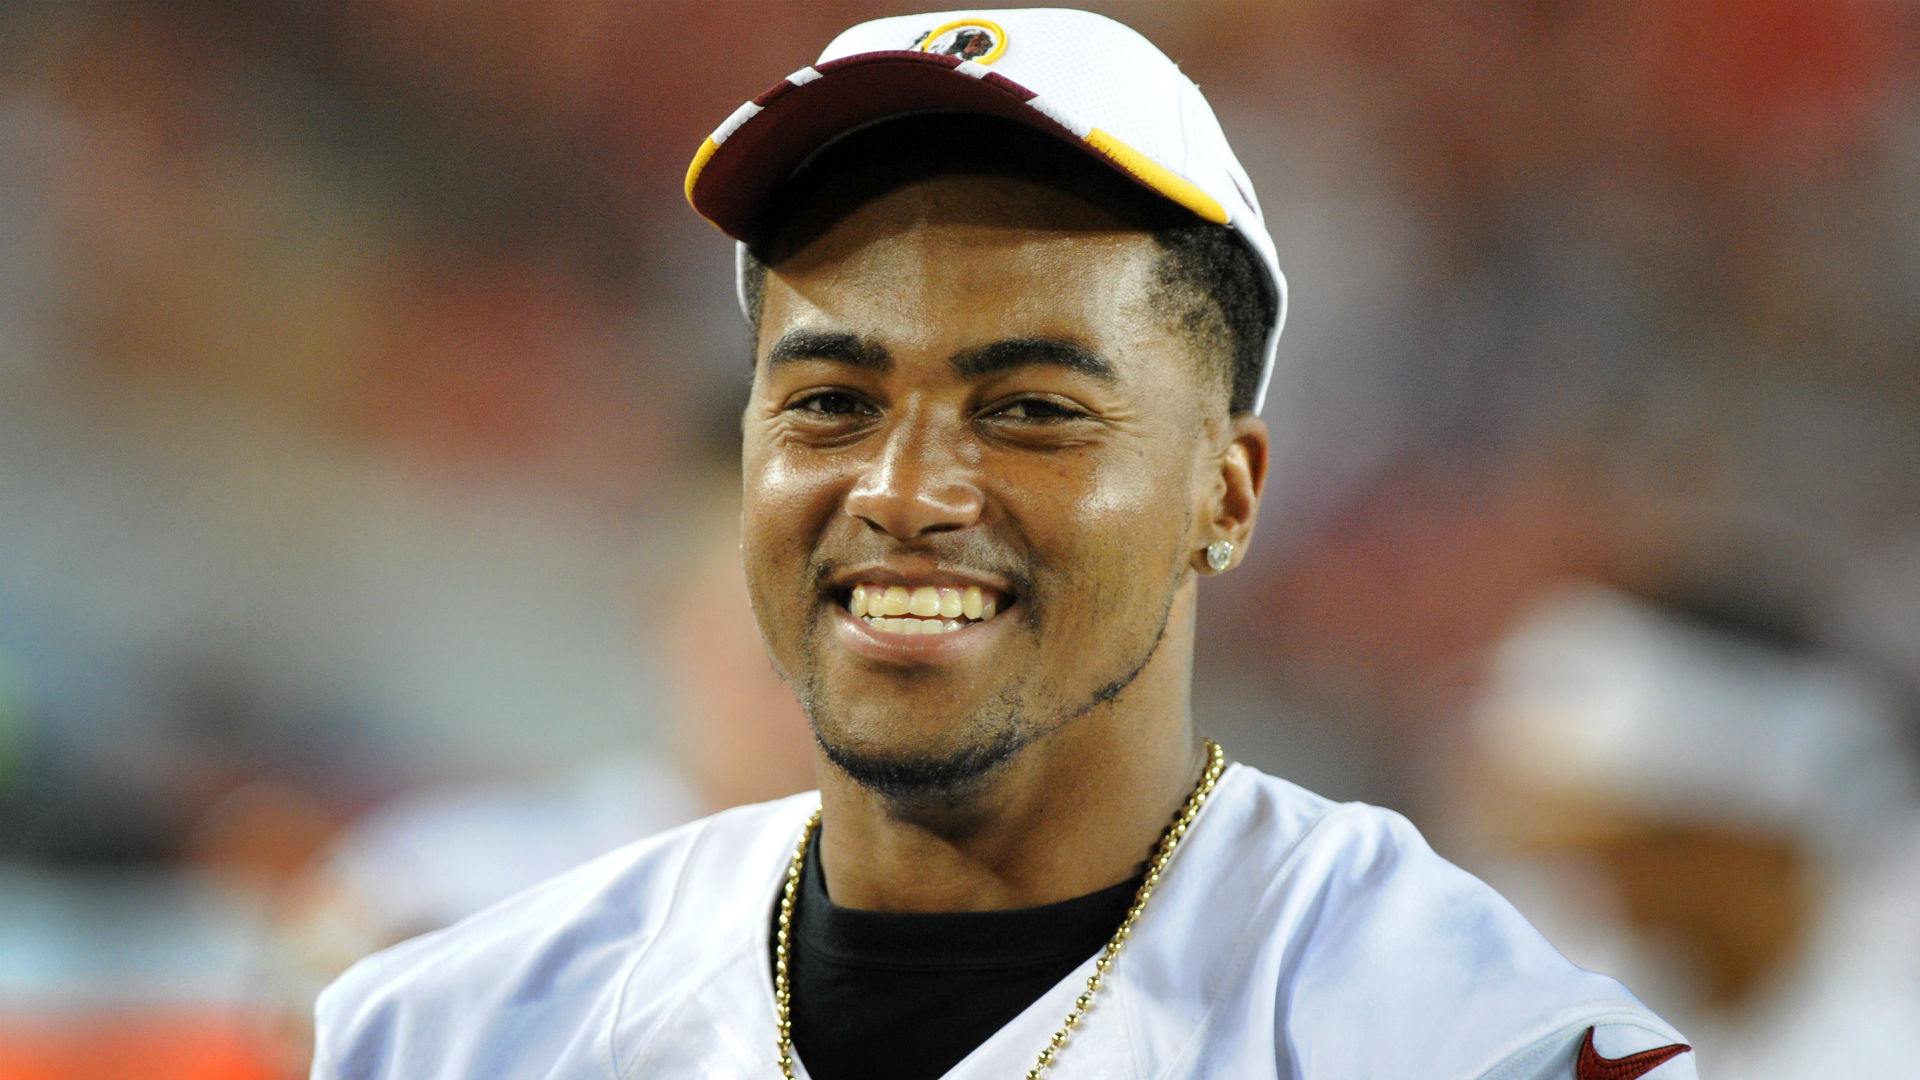 DeSean Jackson wouldn't be first 'smear' victim: ask Percy Harvin, Josh Freeman